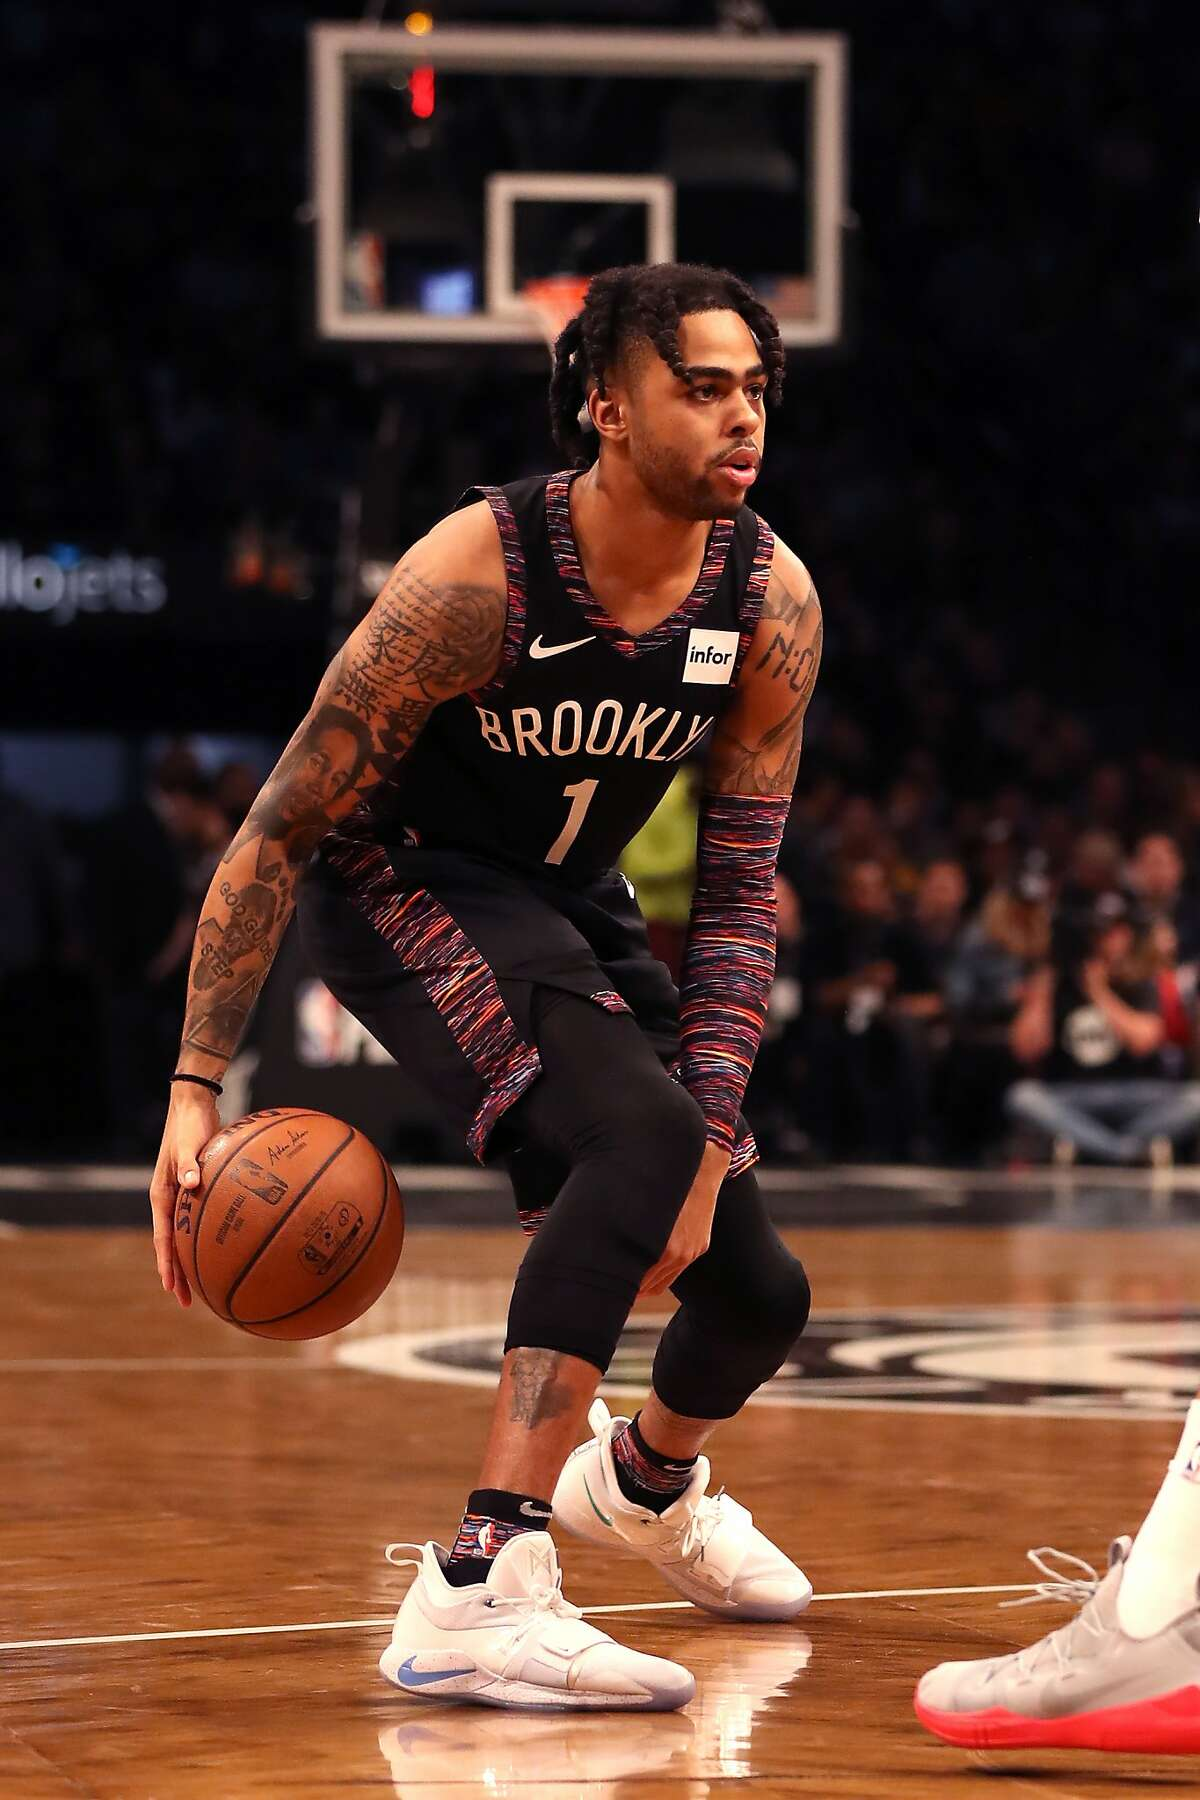 D'Angelo Russell #1 of the Brooklyn Nets handles the ball in the first quarter against the Philadelphia 76ers during game three of Round One of the 2019 NBA Playoffs at Barclays Center on April 18, 2019 in the Brooklyn borough of New York City.